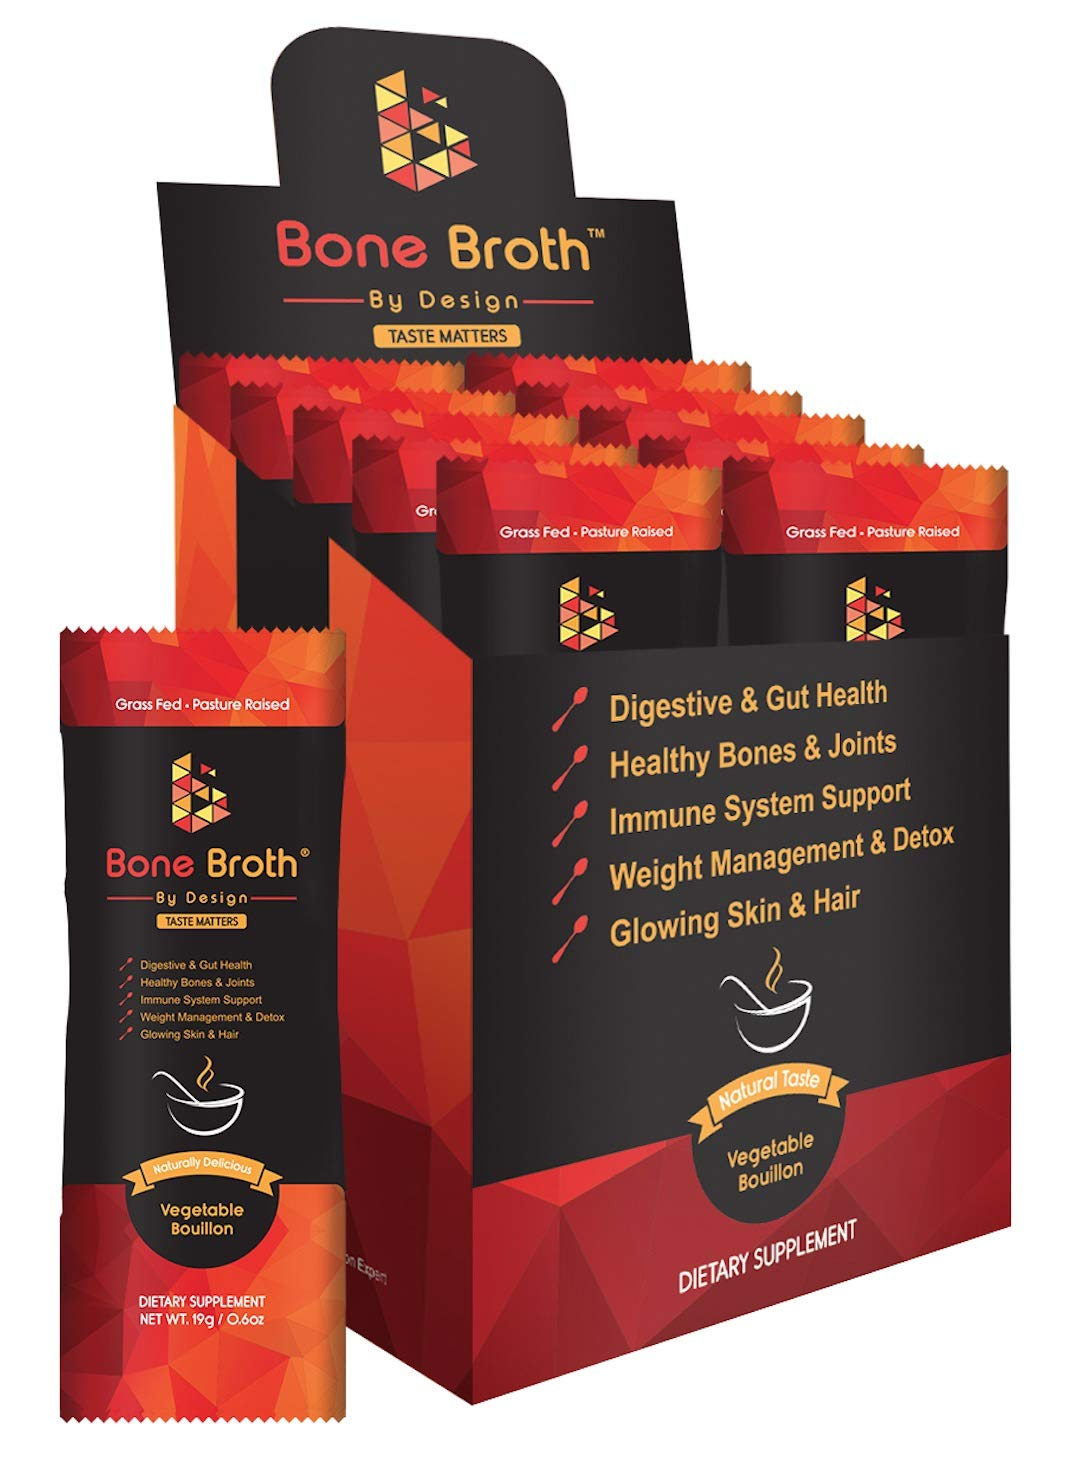 Bone Broth Grass Fed Beef • 10 Sachets • Vegetable Bouillon Natural Flavor • Paleo • Ketogenic with MCT Oil • Non GMO • Broth by Design by Broth by Design